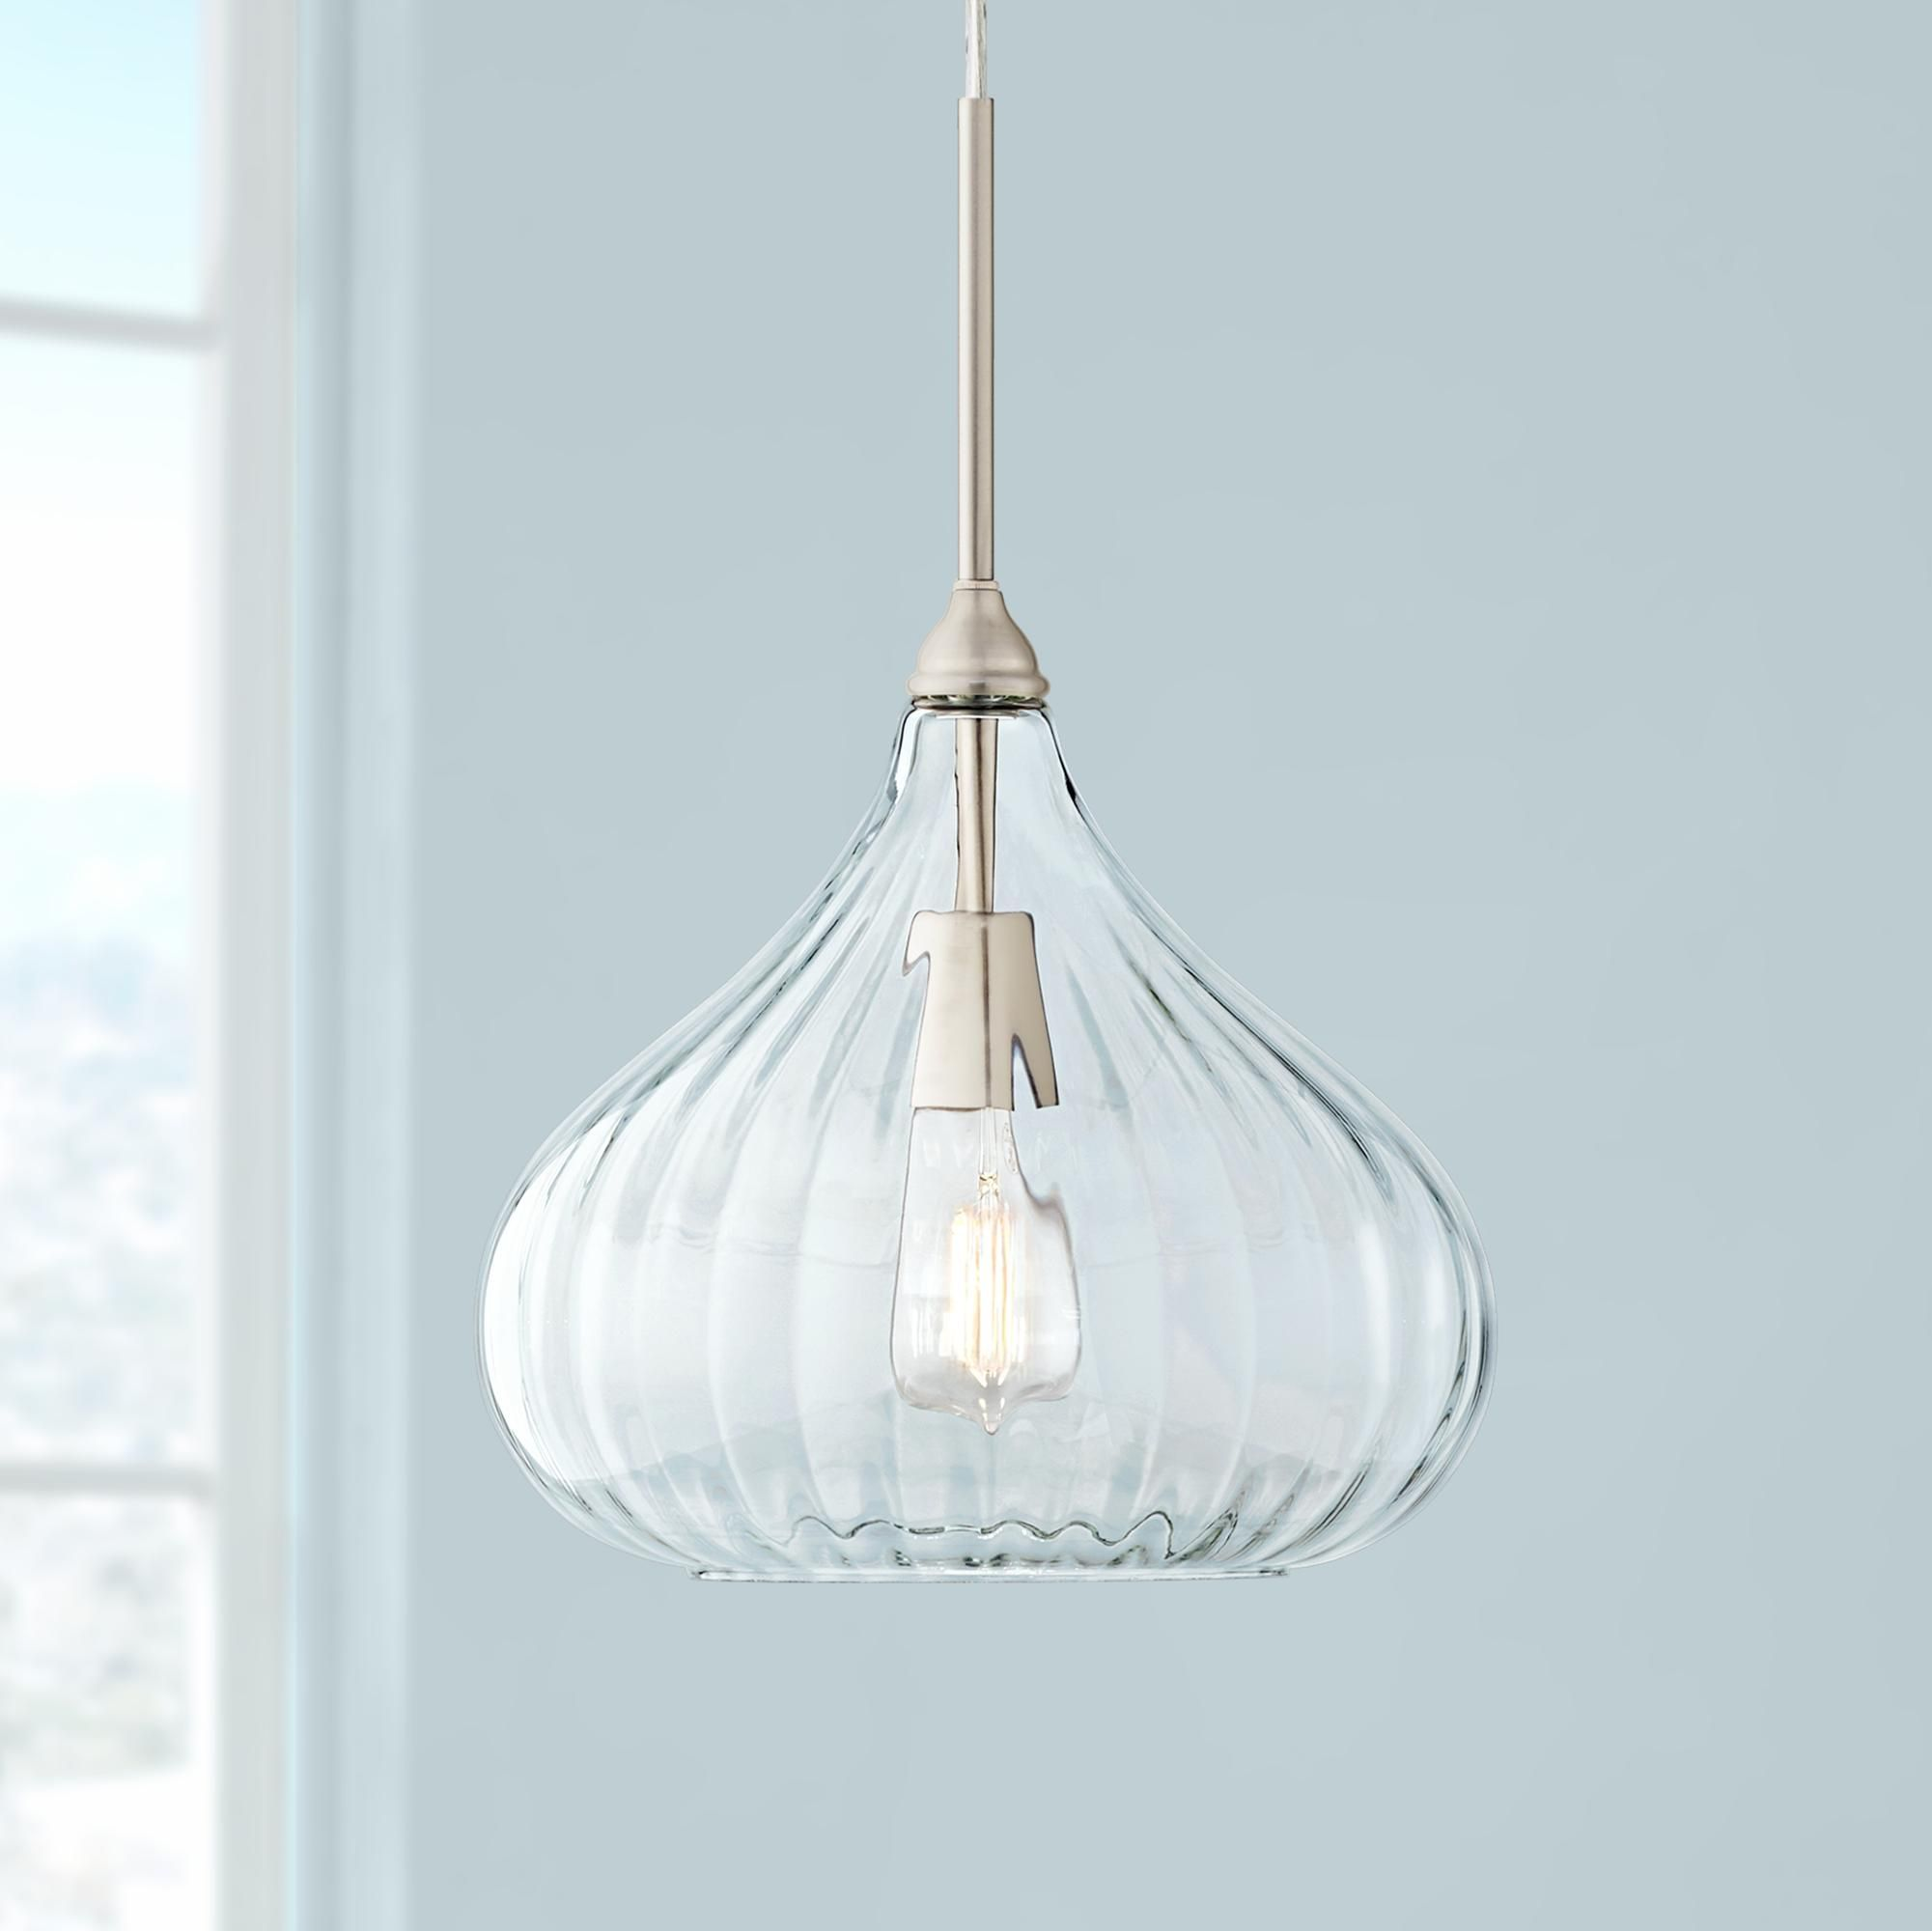 Major 12 And One Half Inch Wide Nickel And Clear Glass Led Pendant Light Beleuchtung Lampen Home Decor